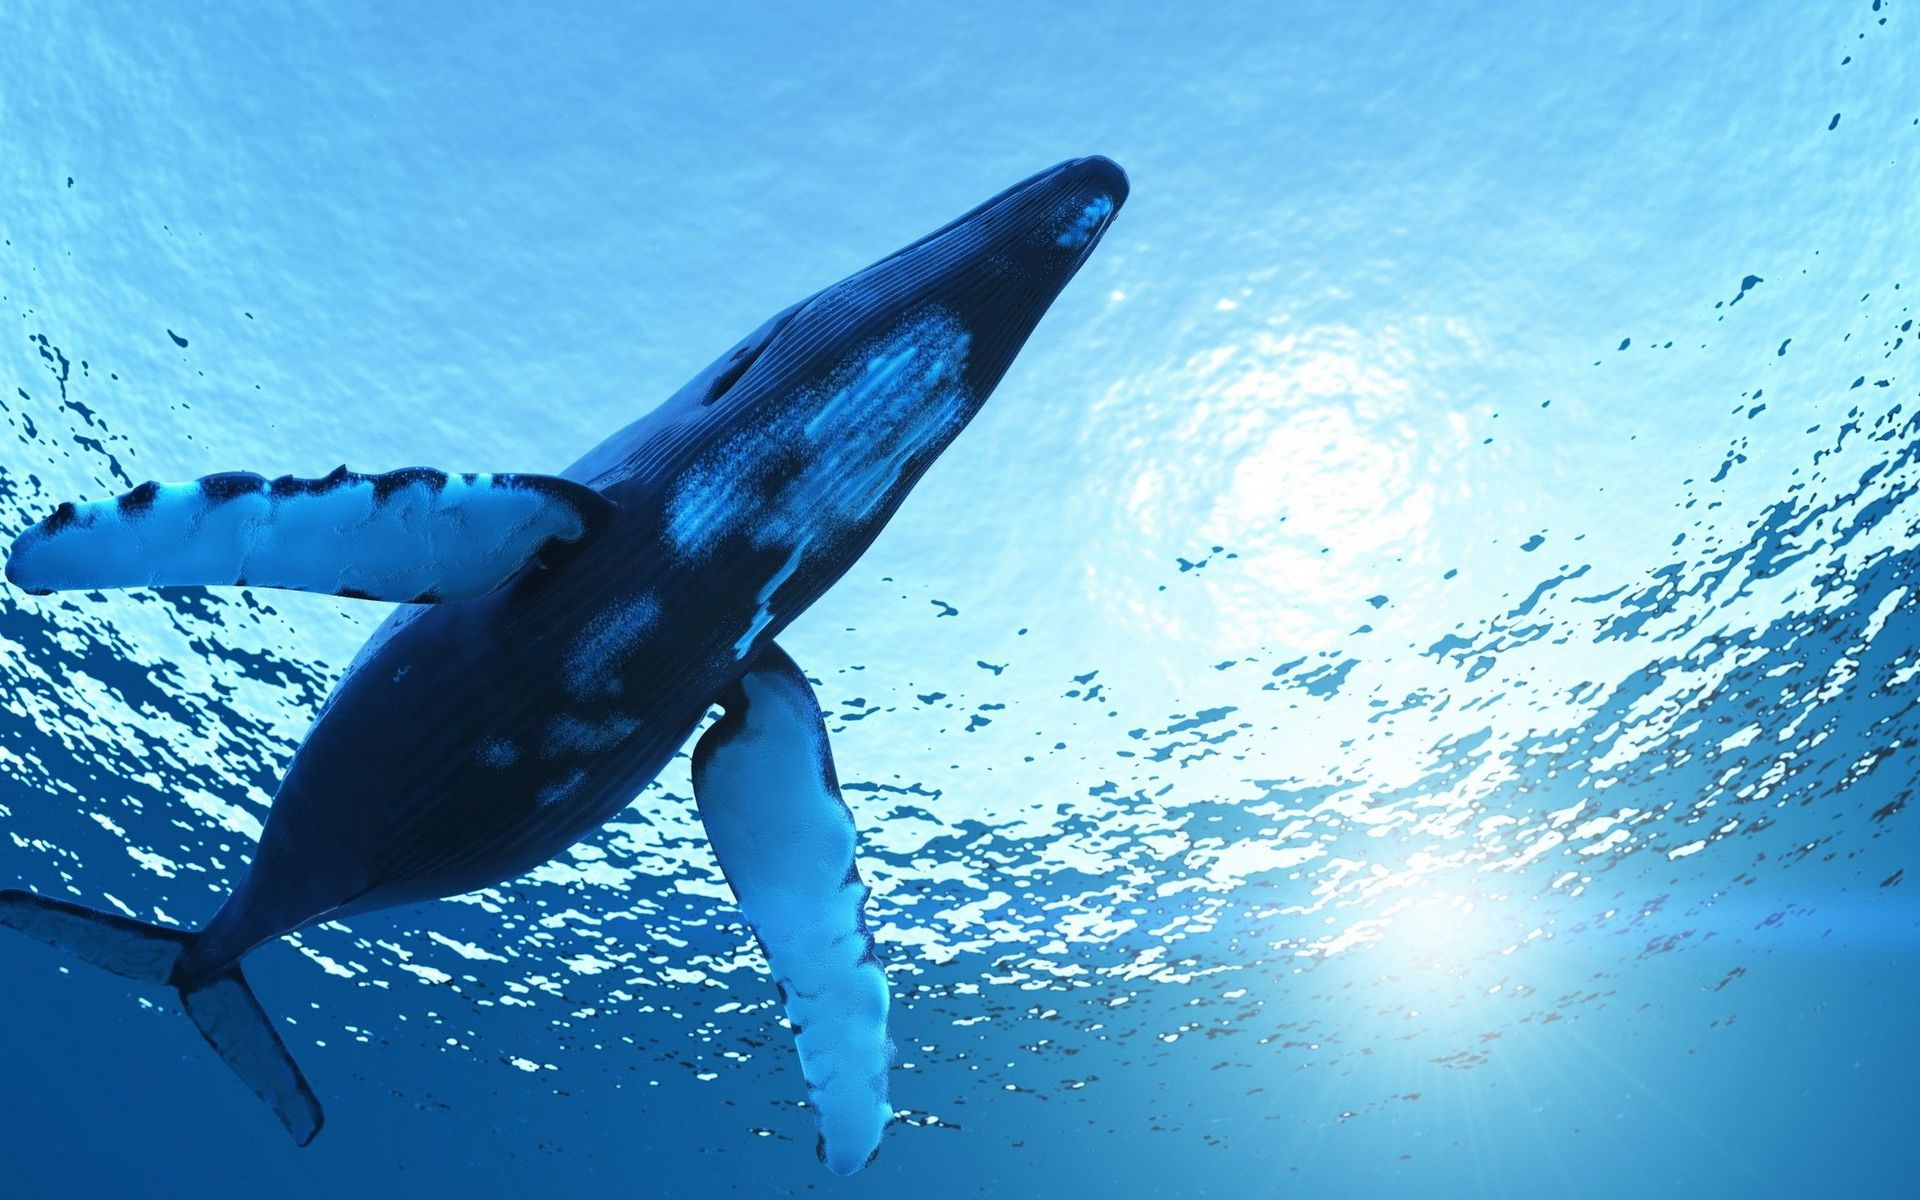 Whale wallpaper - photo#24